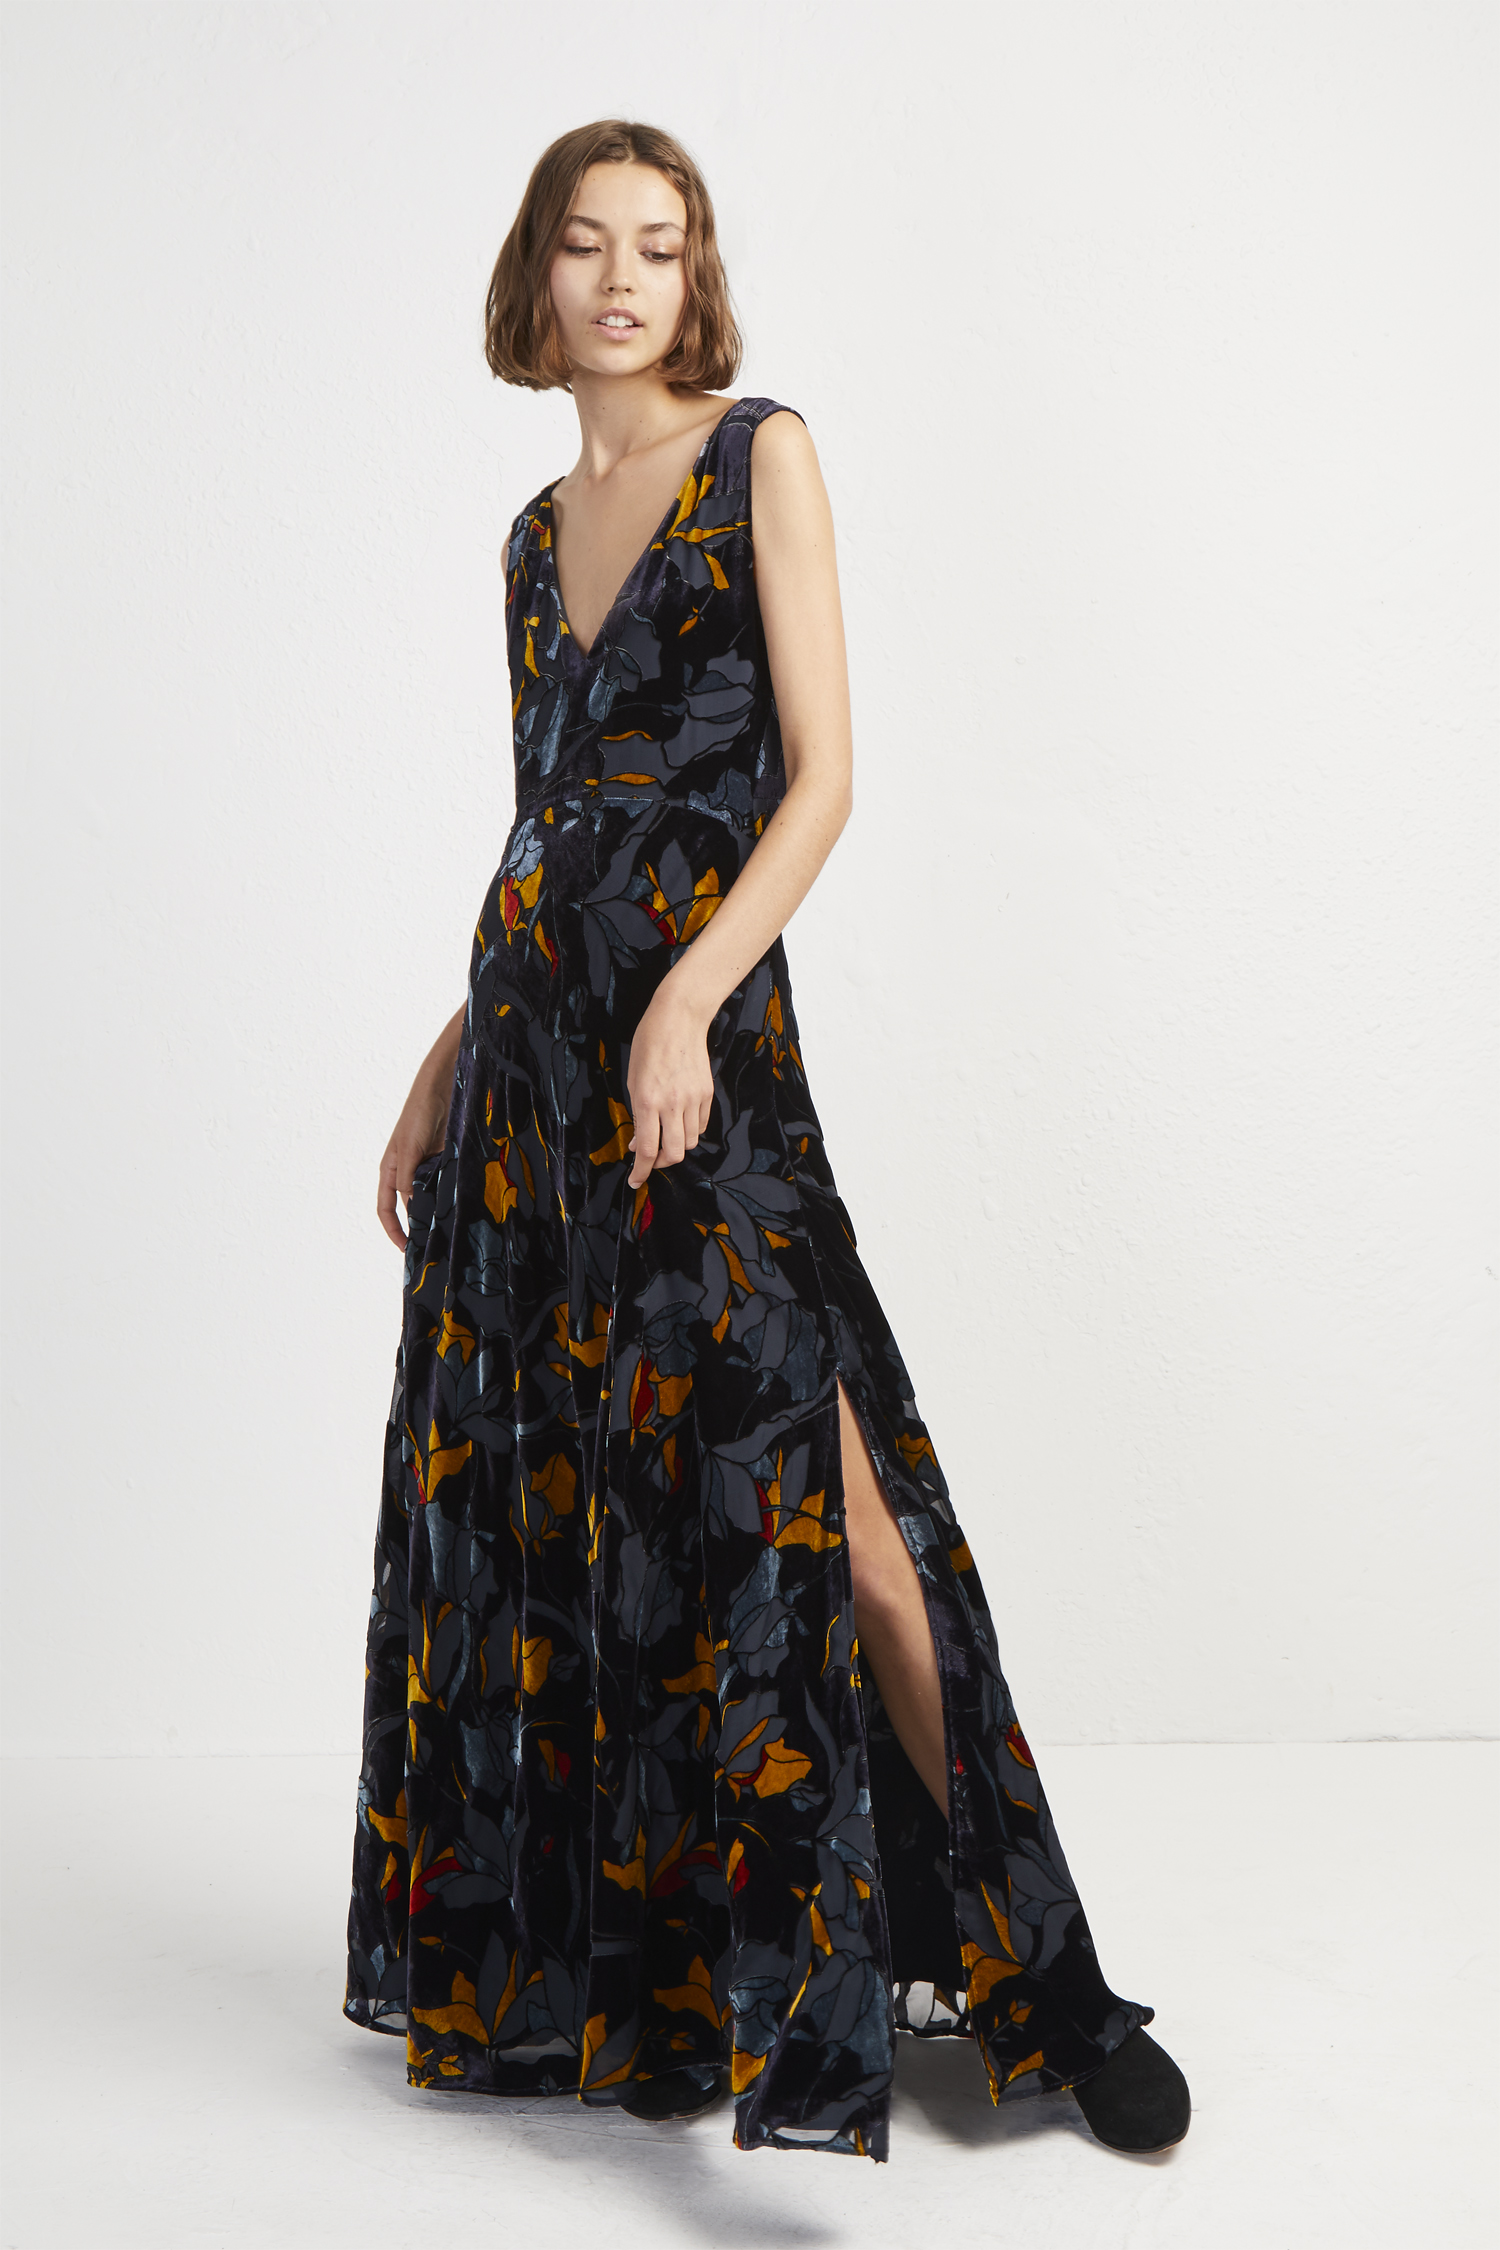 to wear - Maxi Velvet dress pictures video